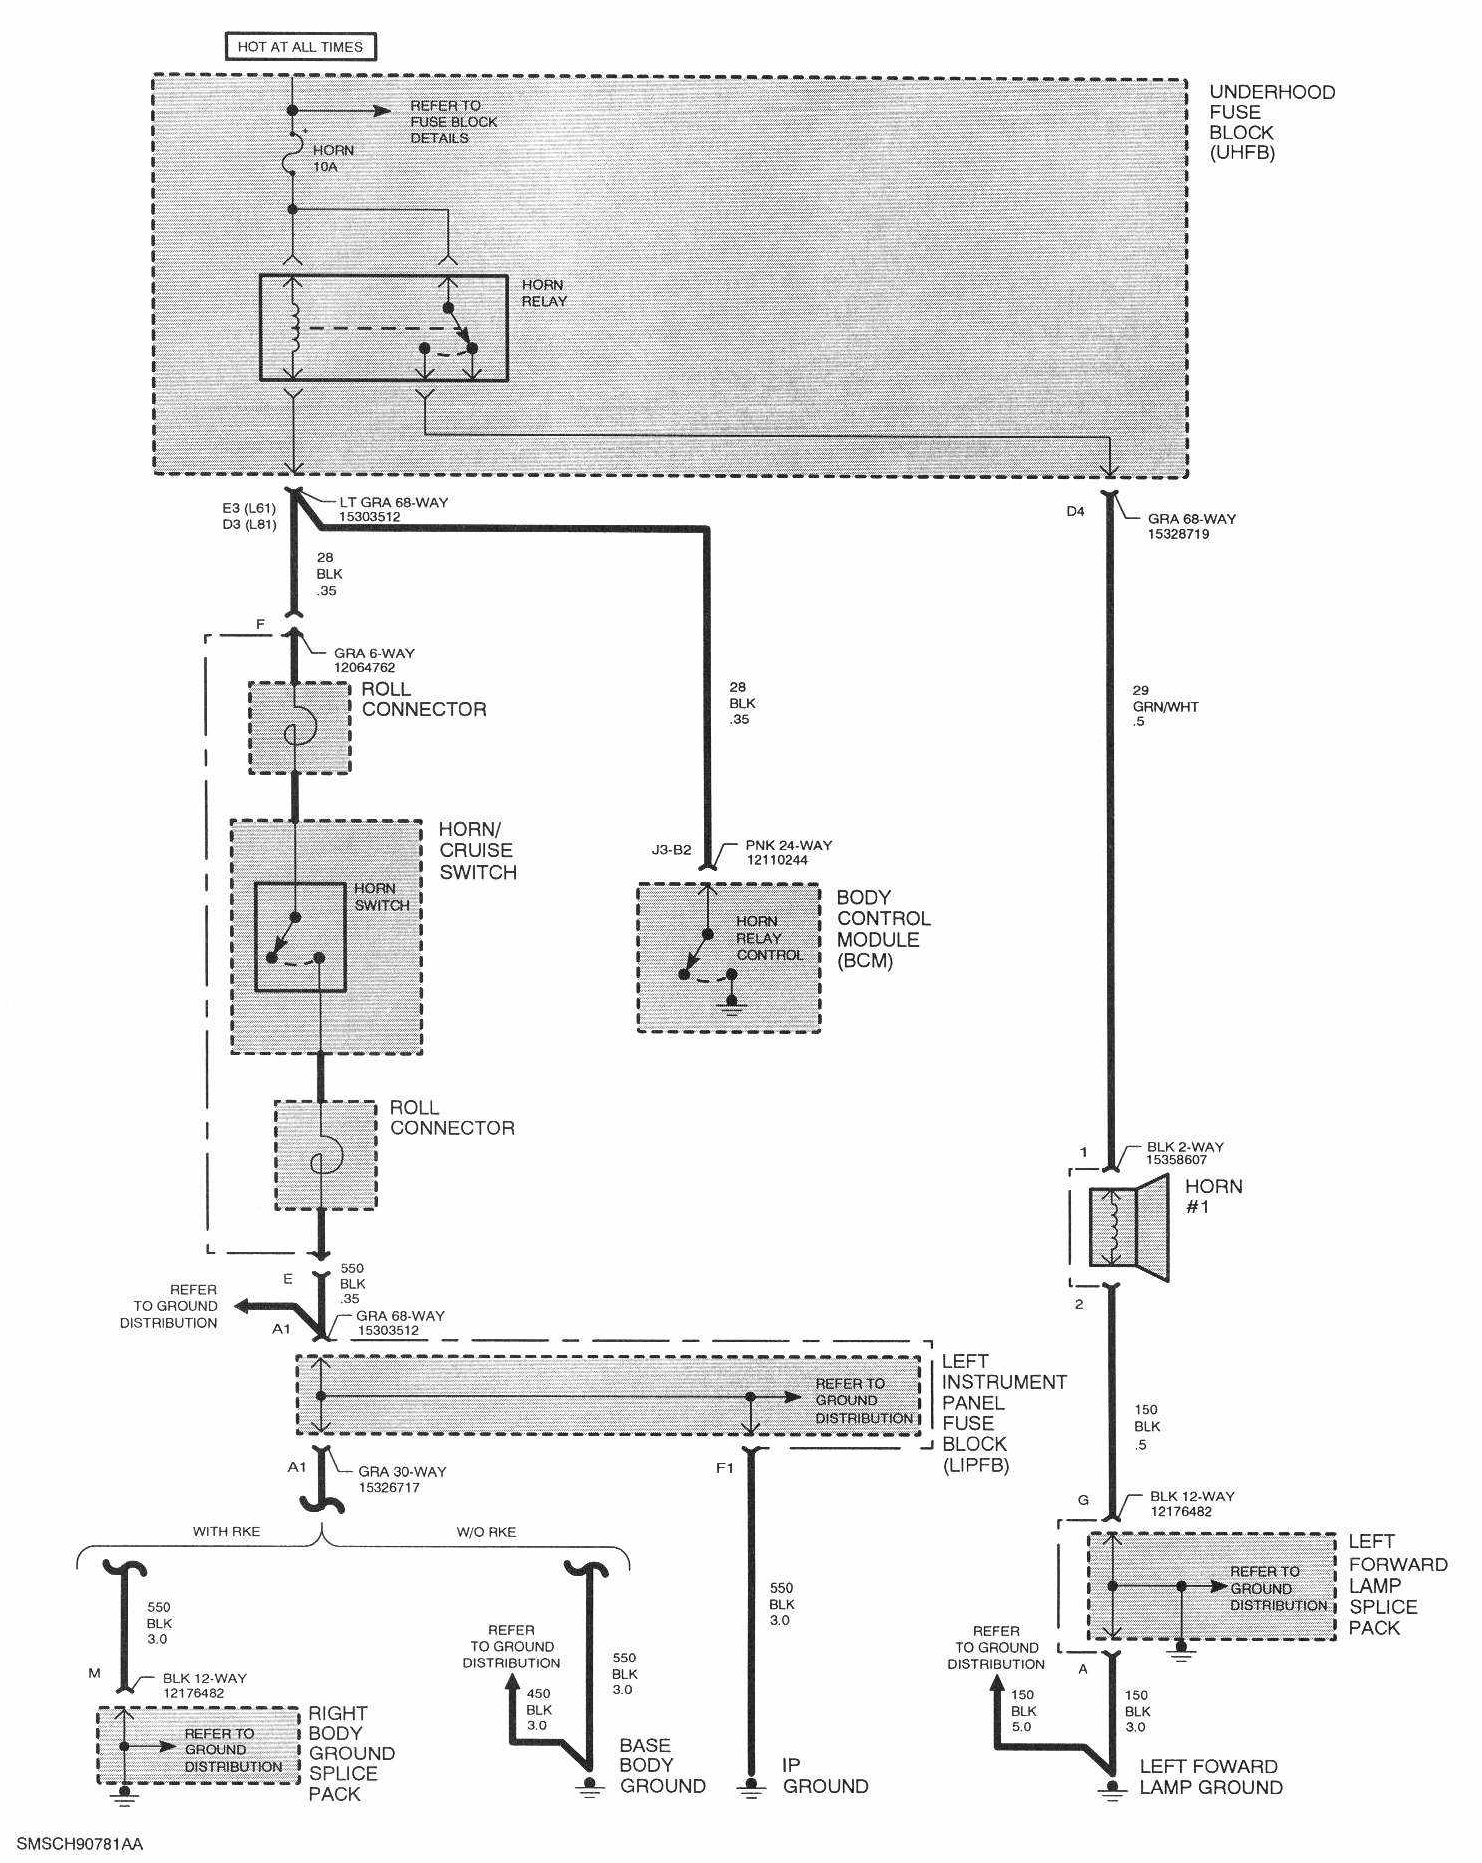 2002 Saturn L200 Wiring Diagram from ww2.justanswer.co.uk